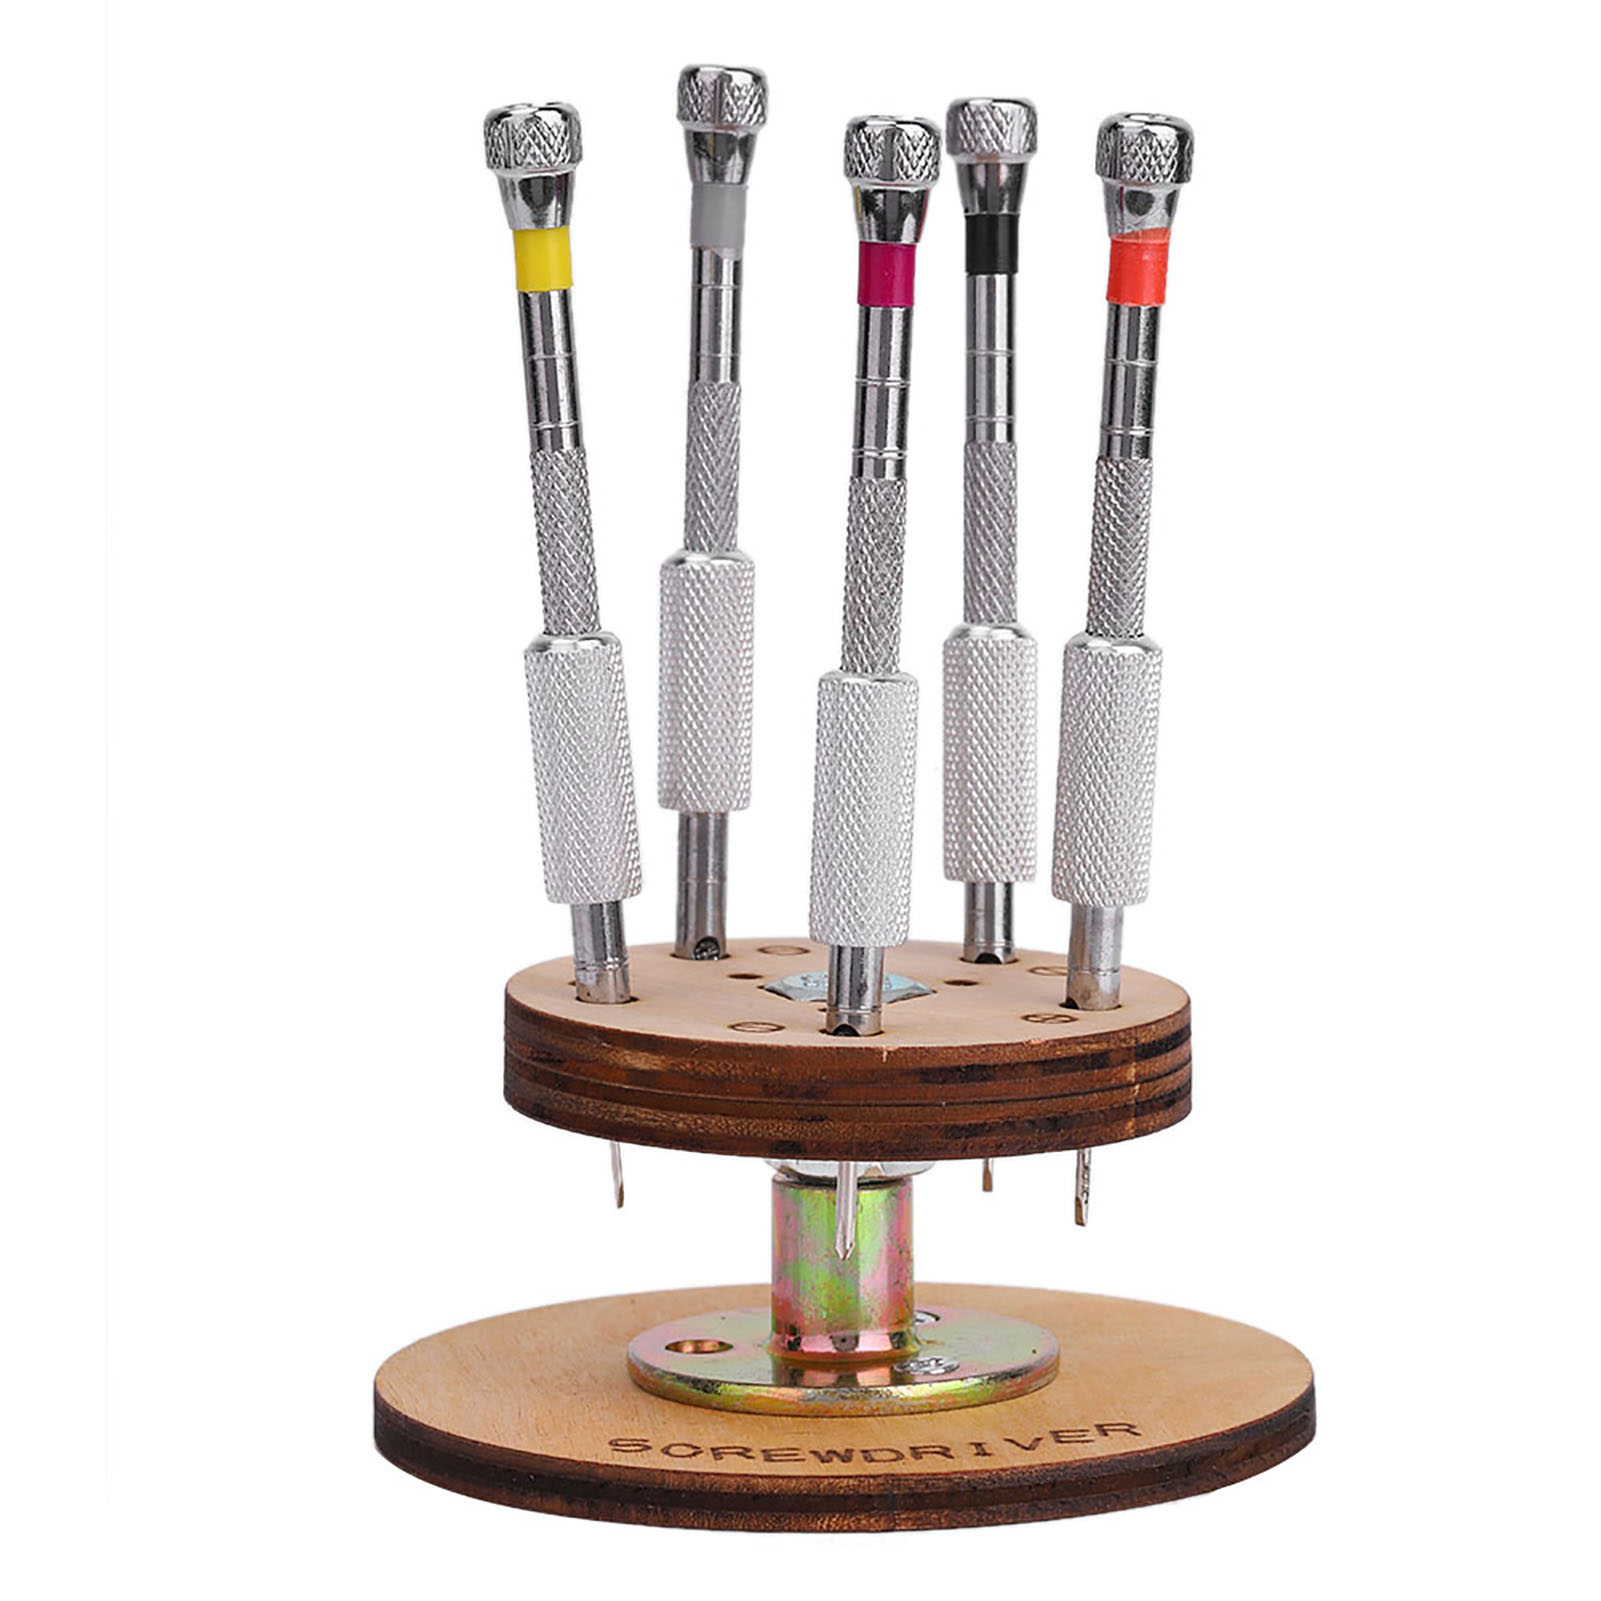 5pcs-Screwdrivers-Jewelers-Watchmaker-Precision-Set-Watch-Repair-Tool-with-Stand thumbnail 13